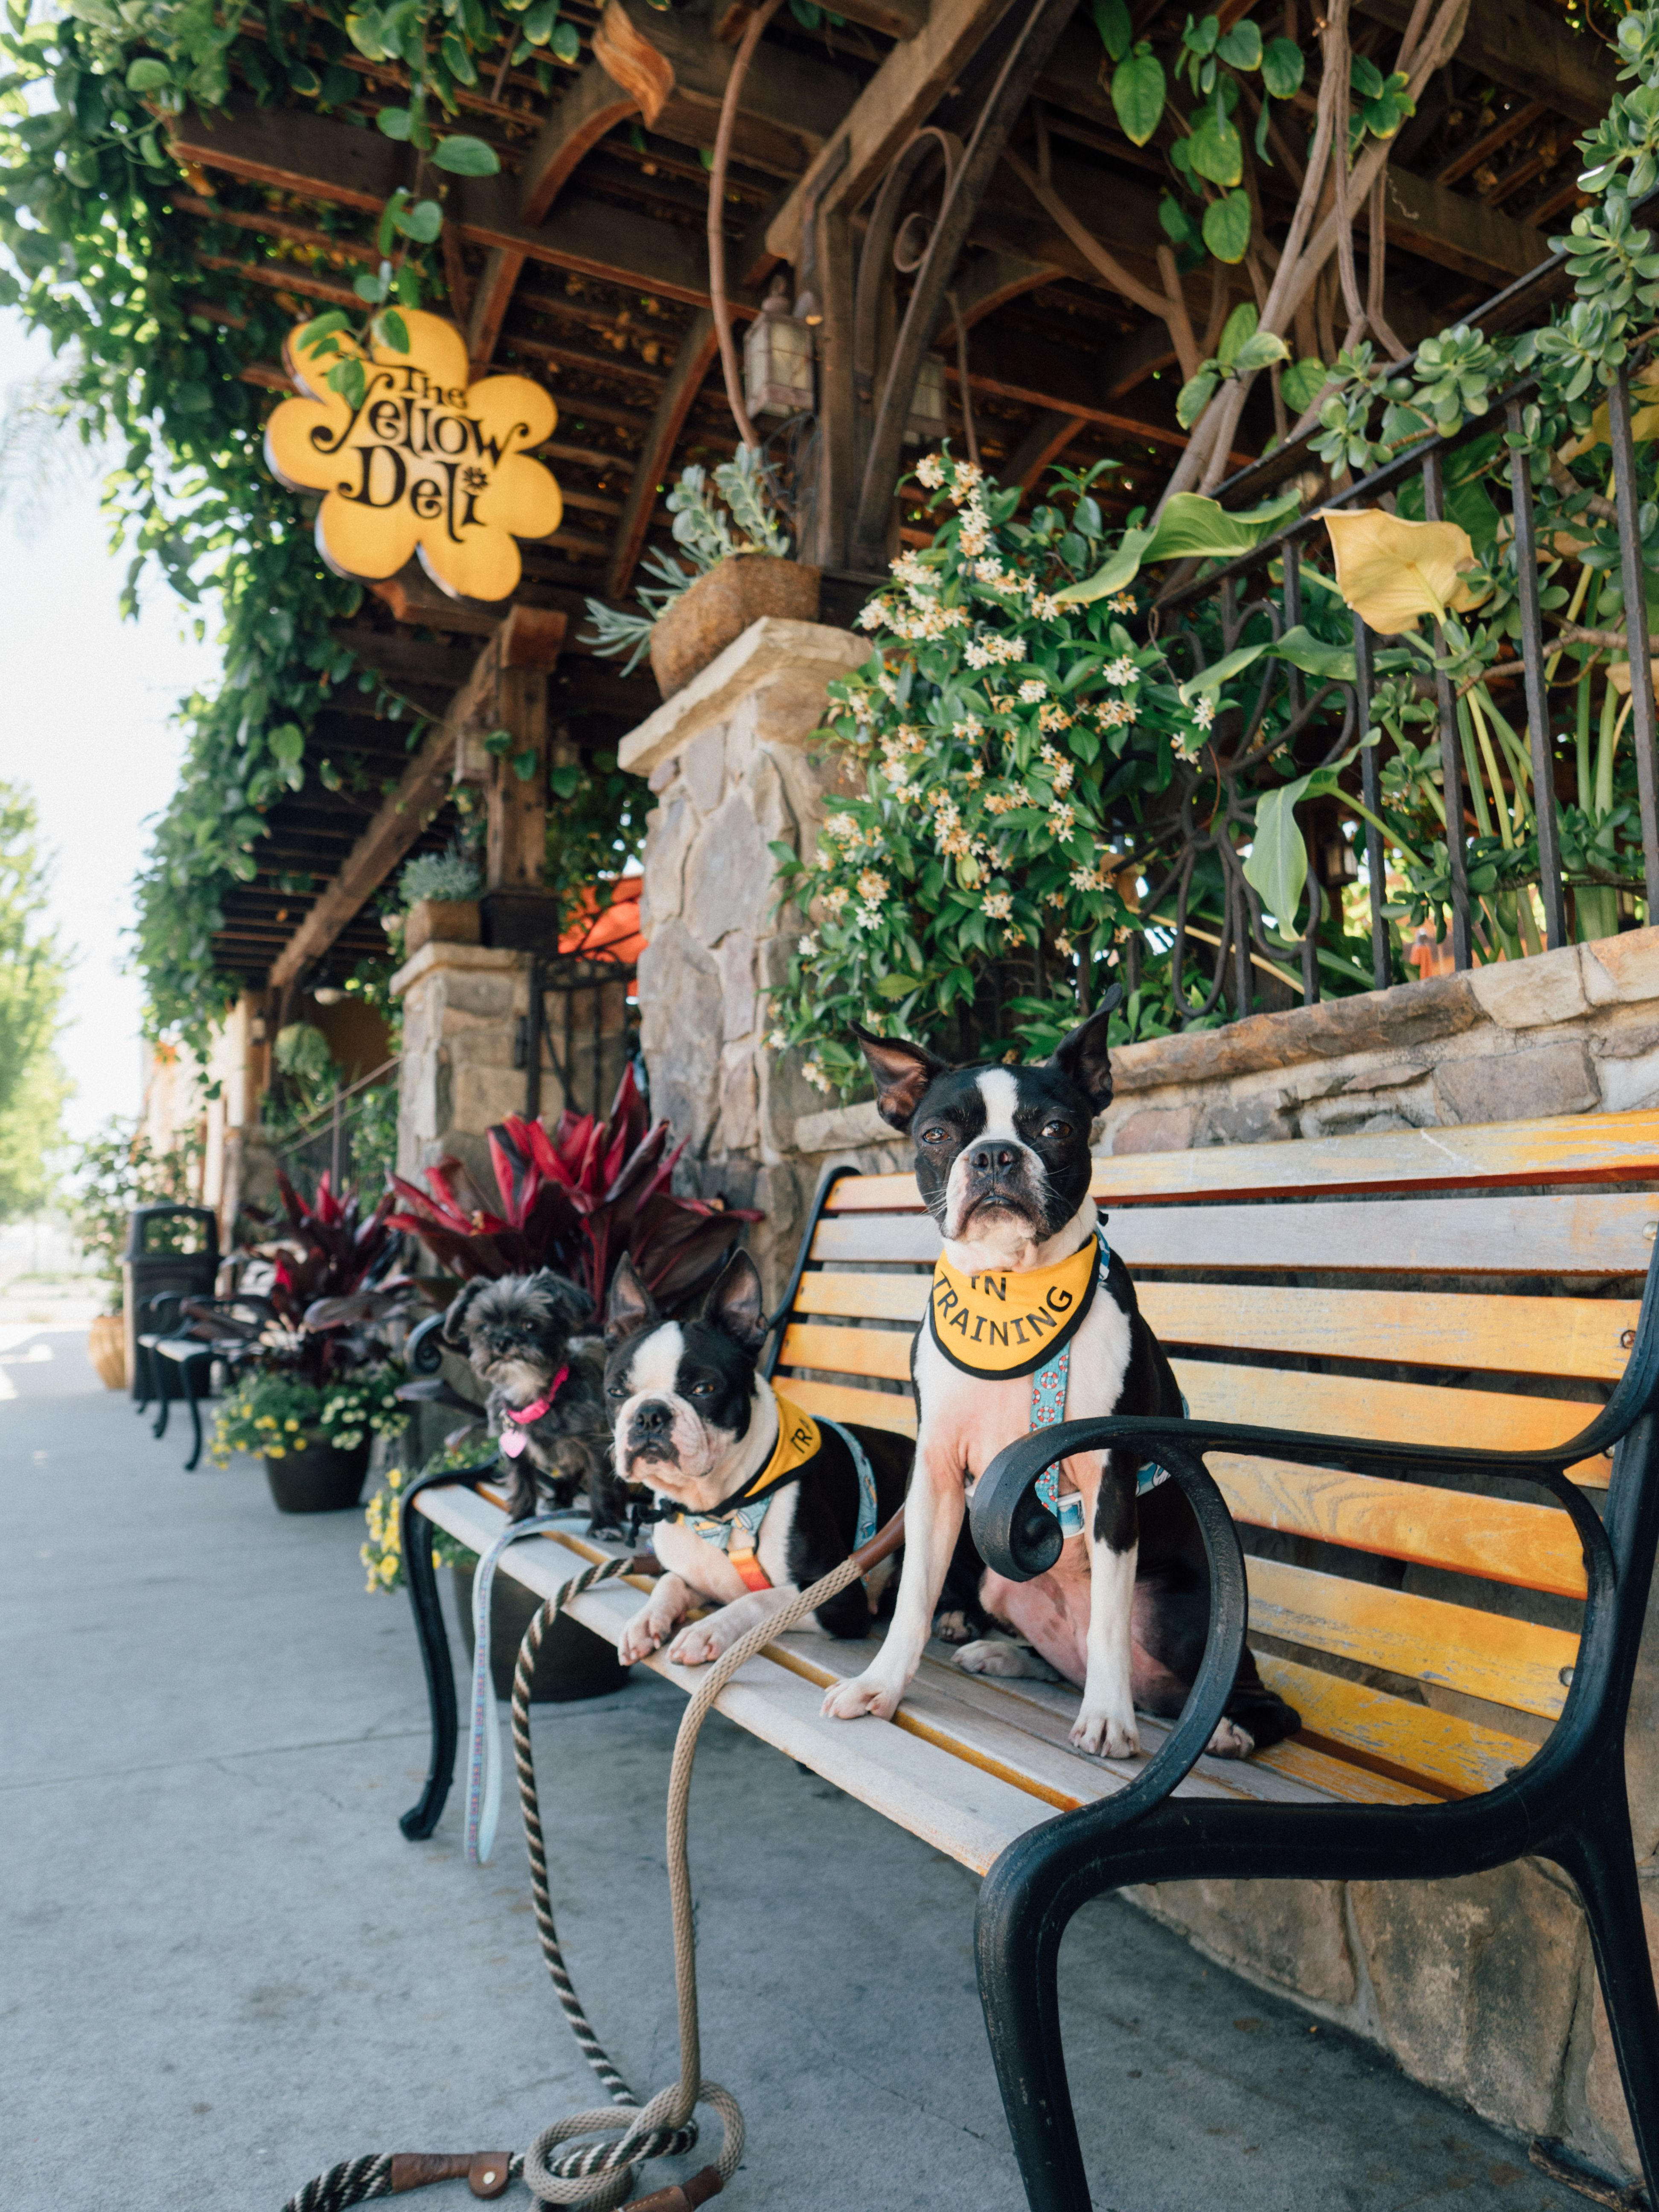 Dog Friendly Vista Instagrammable Murals And The Yellow Deli